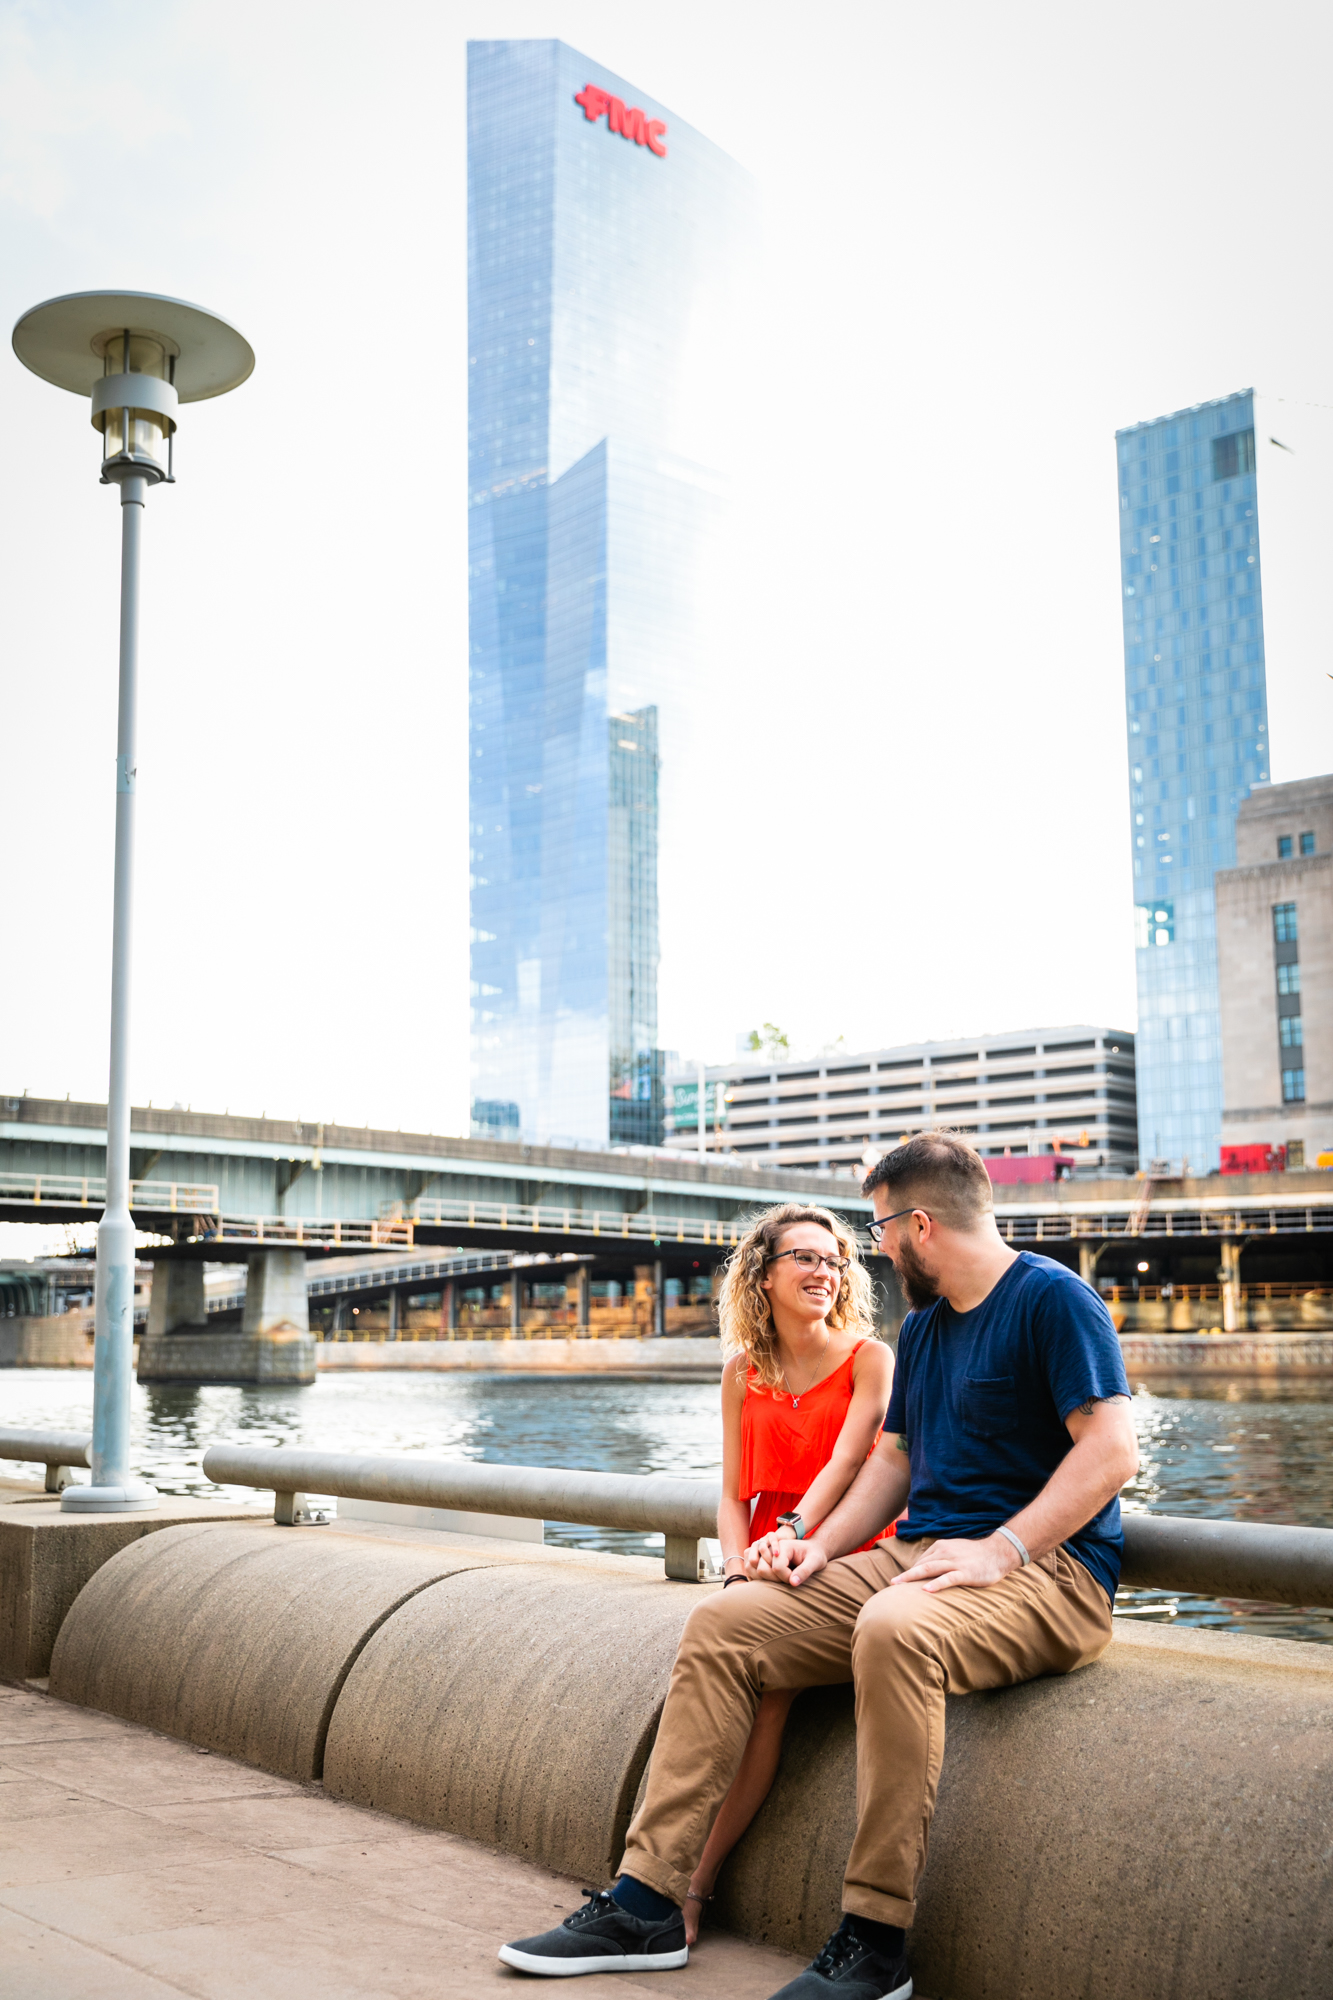 Engagament Photography Philadelphia - LoveStruck Pictures - Schuylkill River Trail-006.jpg